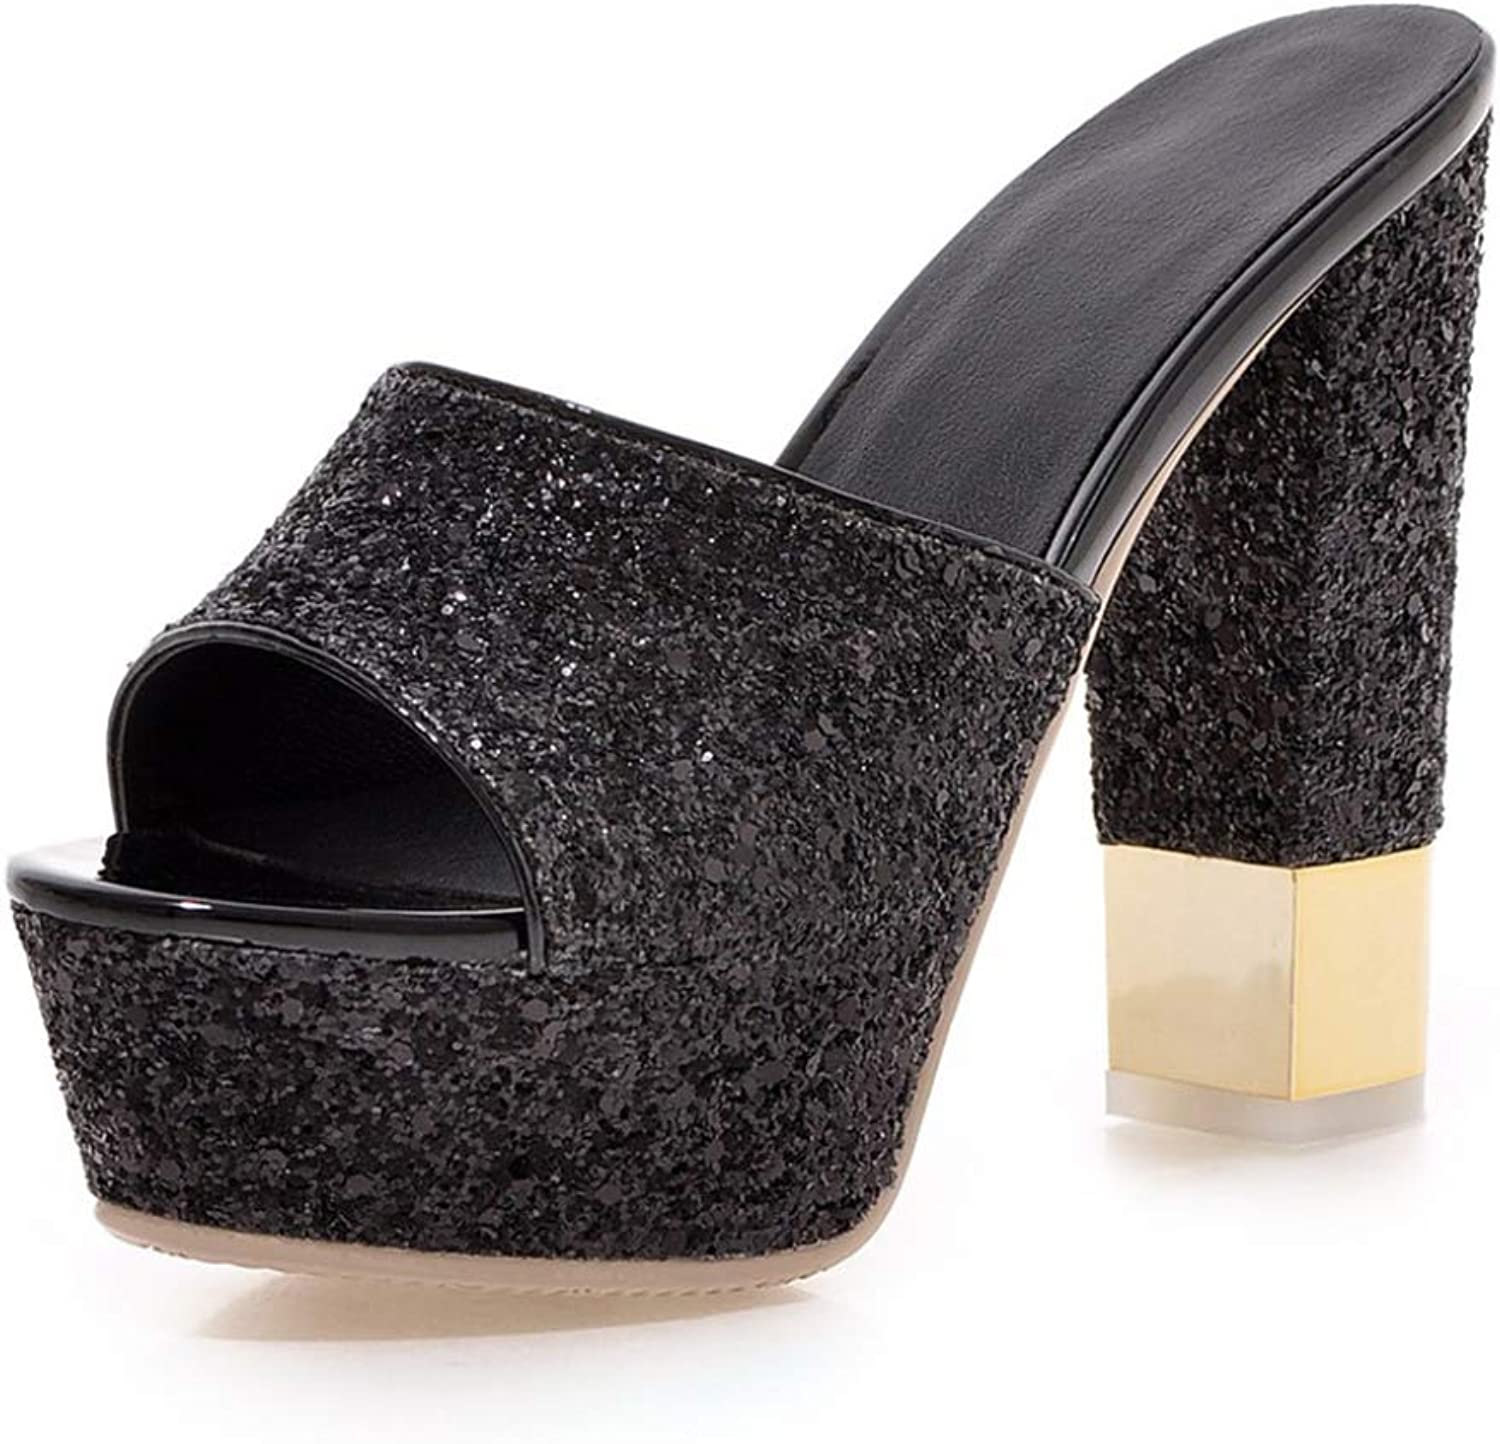 T-JULY Summer Sexy Women Bling Pumps for Party Wedding Ladies Platform Mules Super High Heels shoes Woman